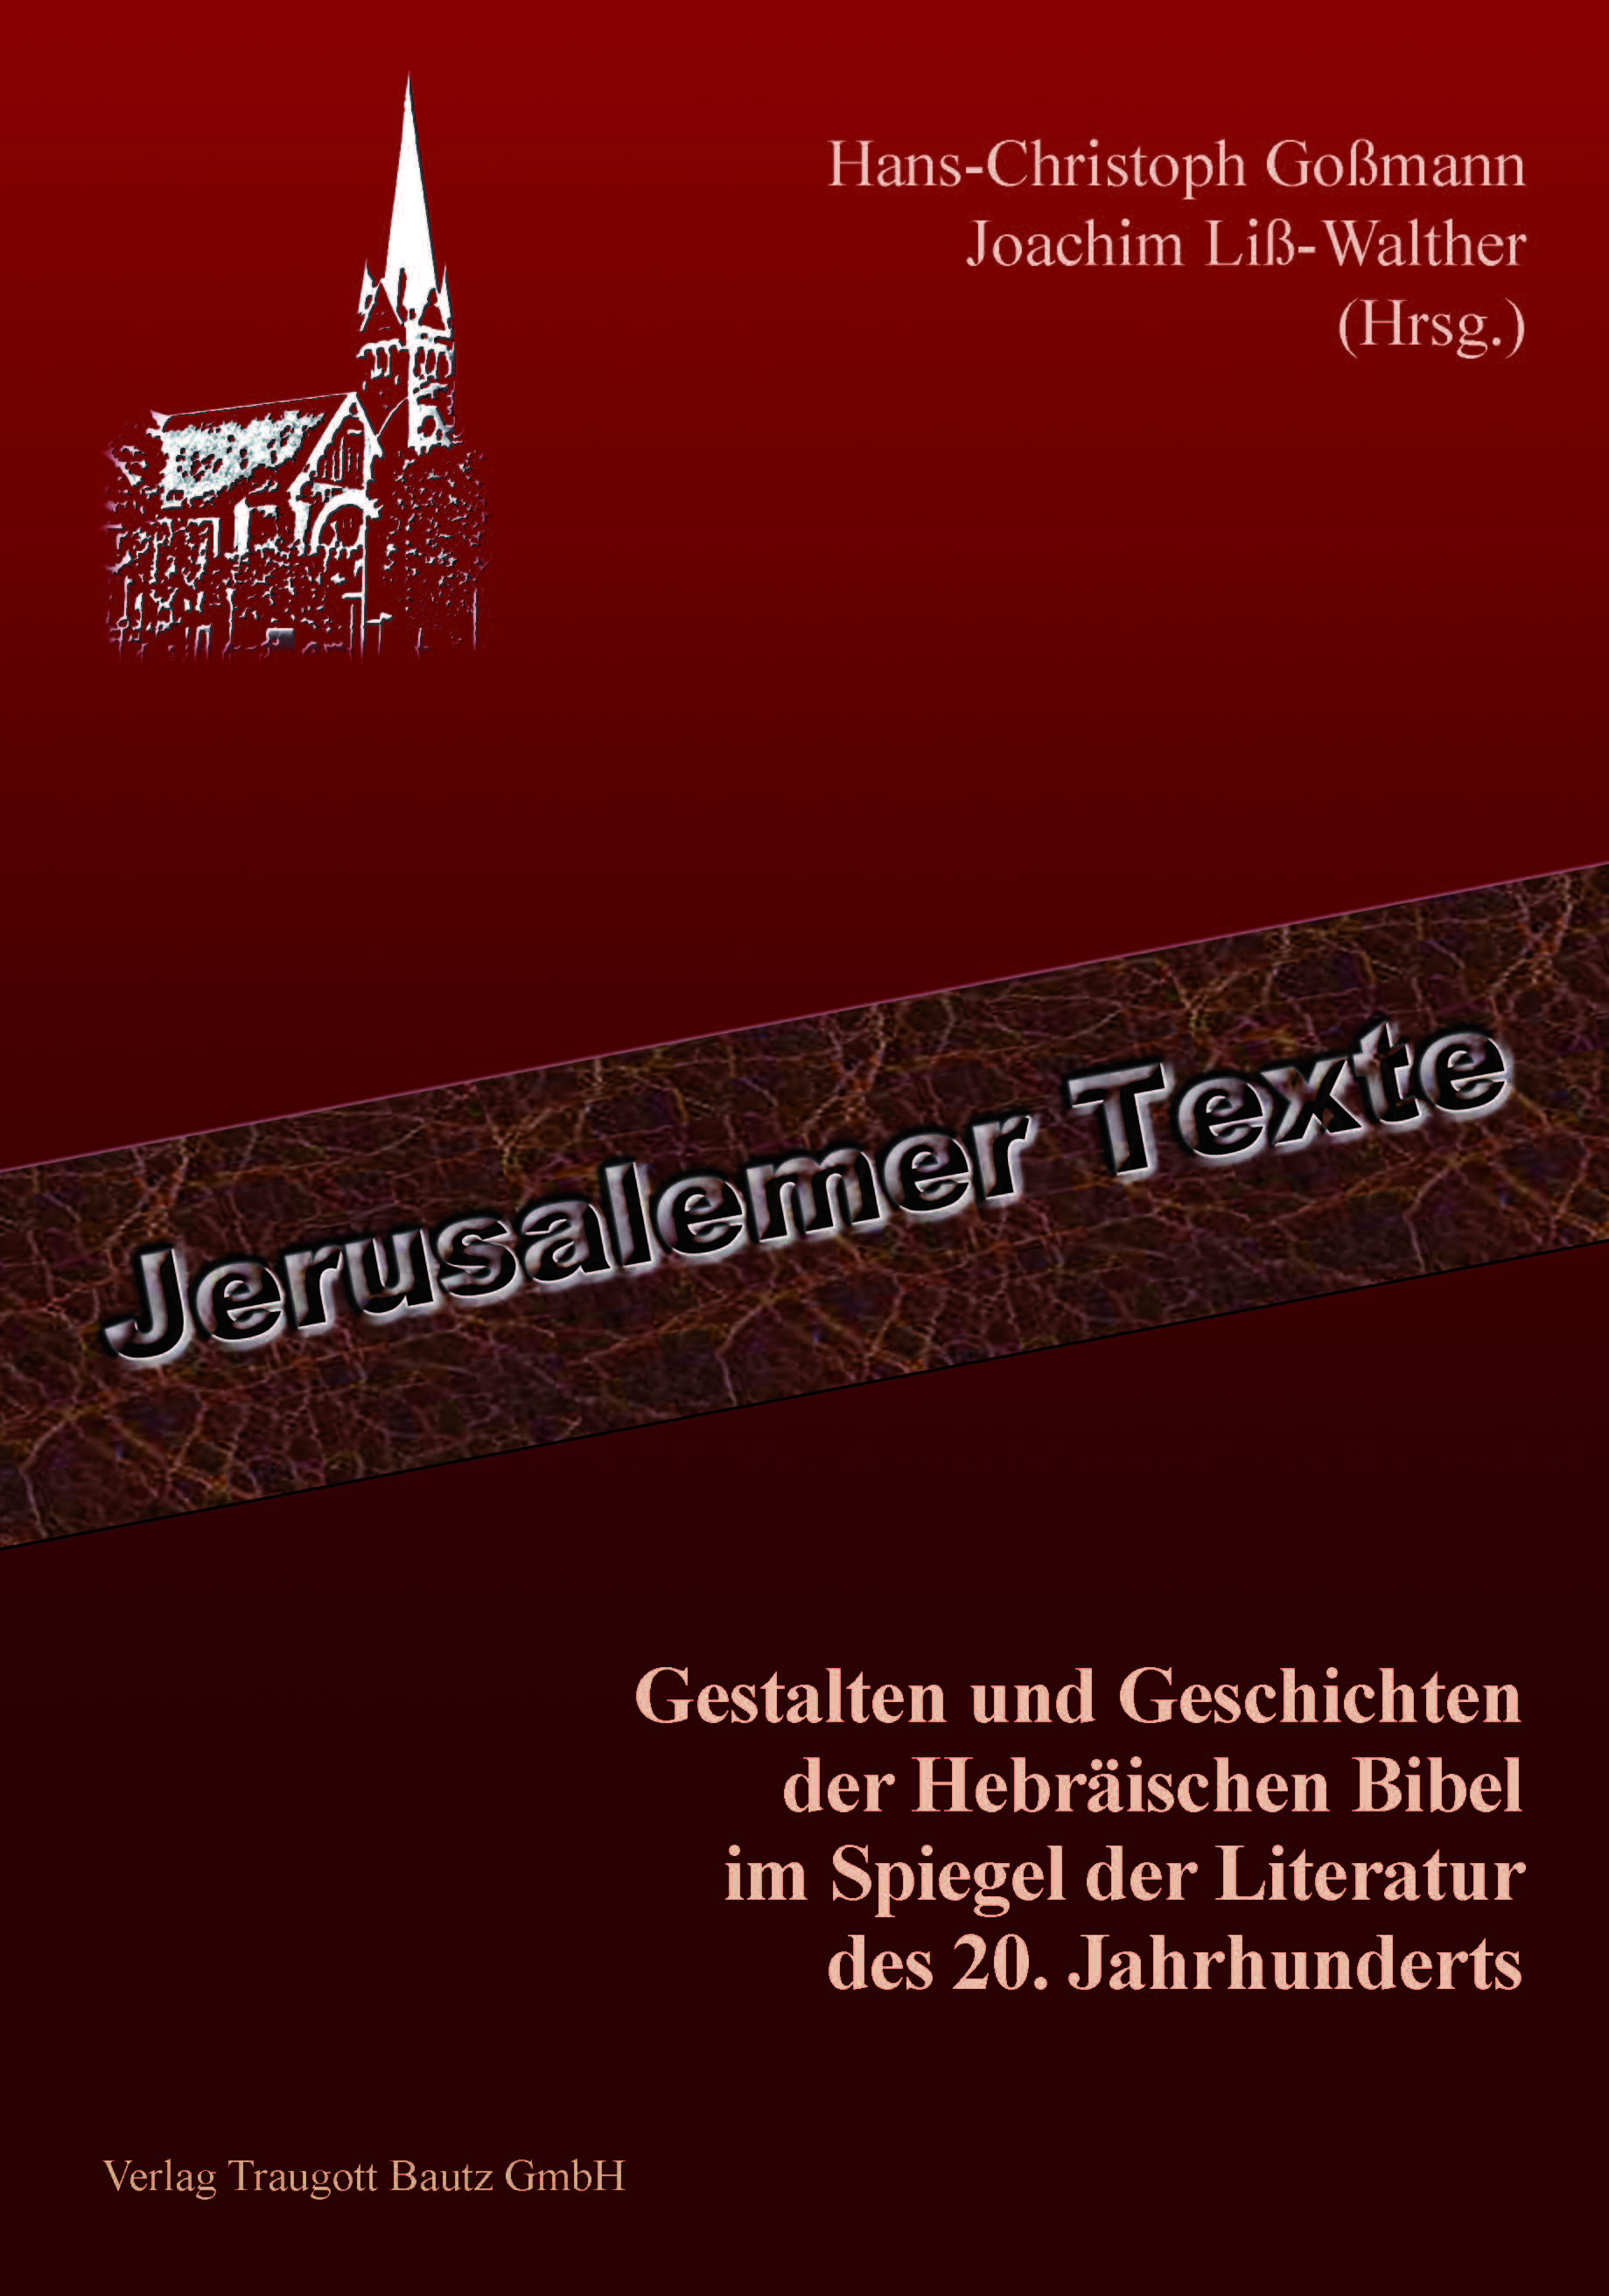 jerusalem texte band13